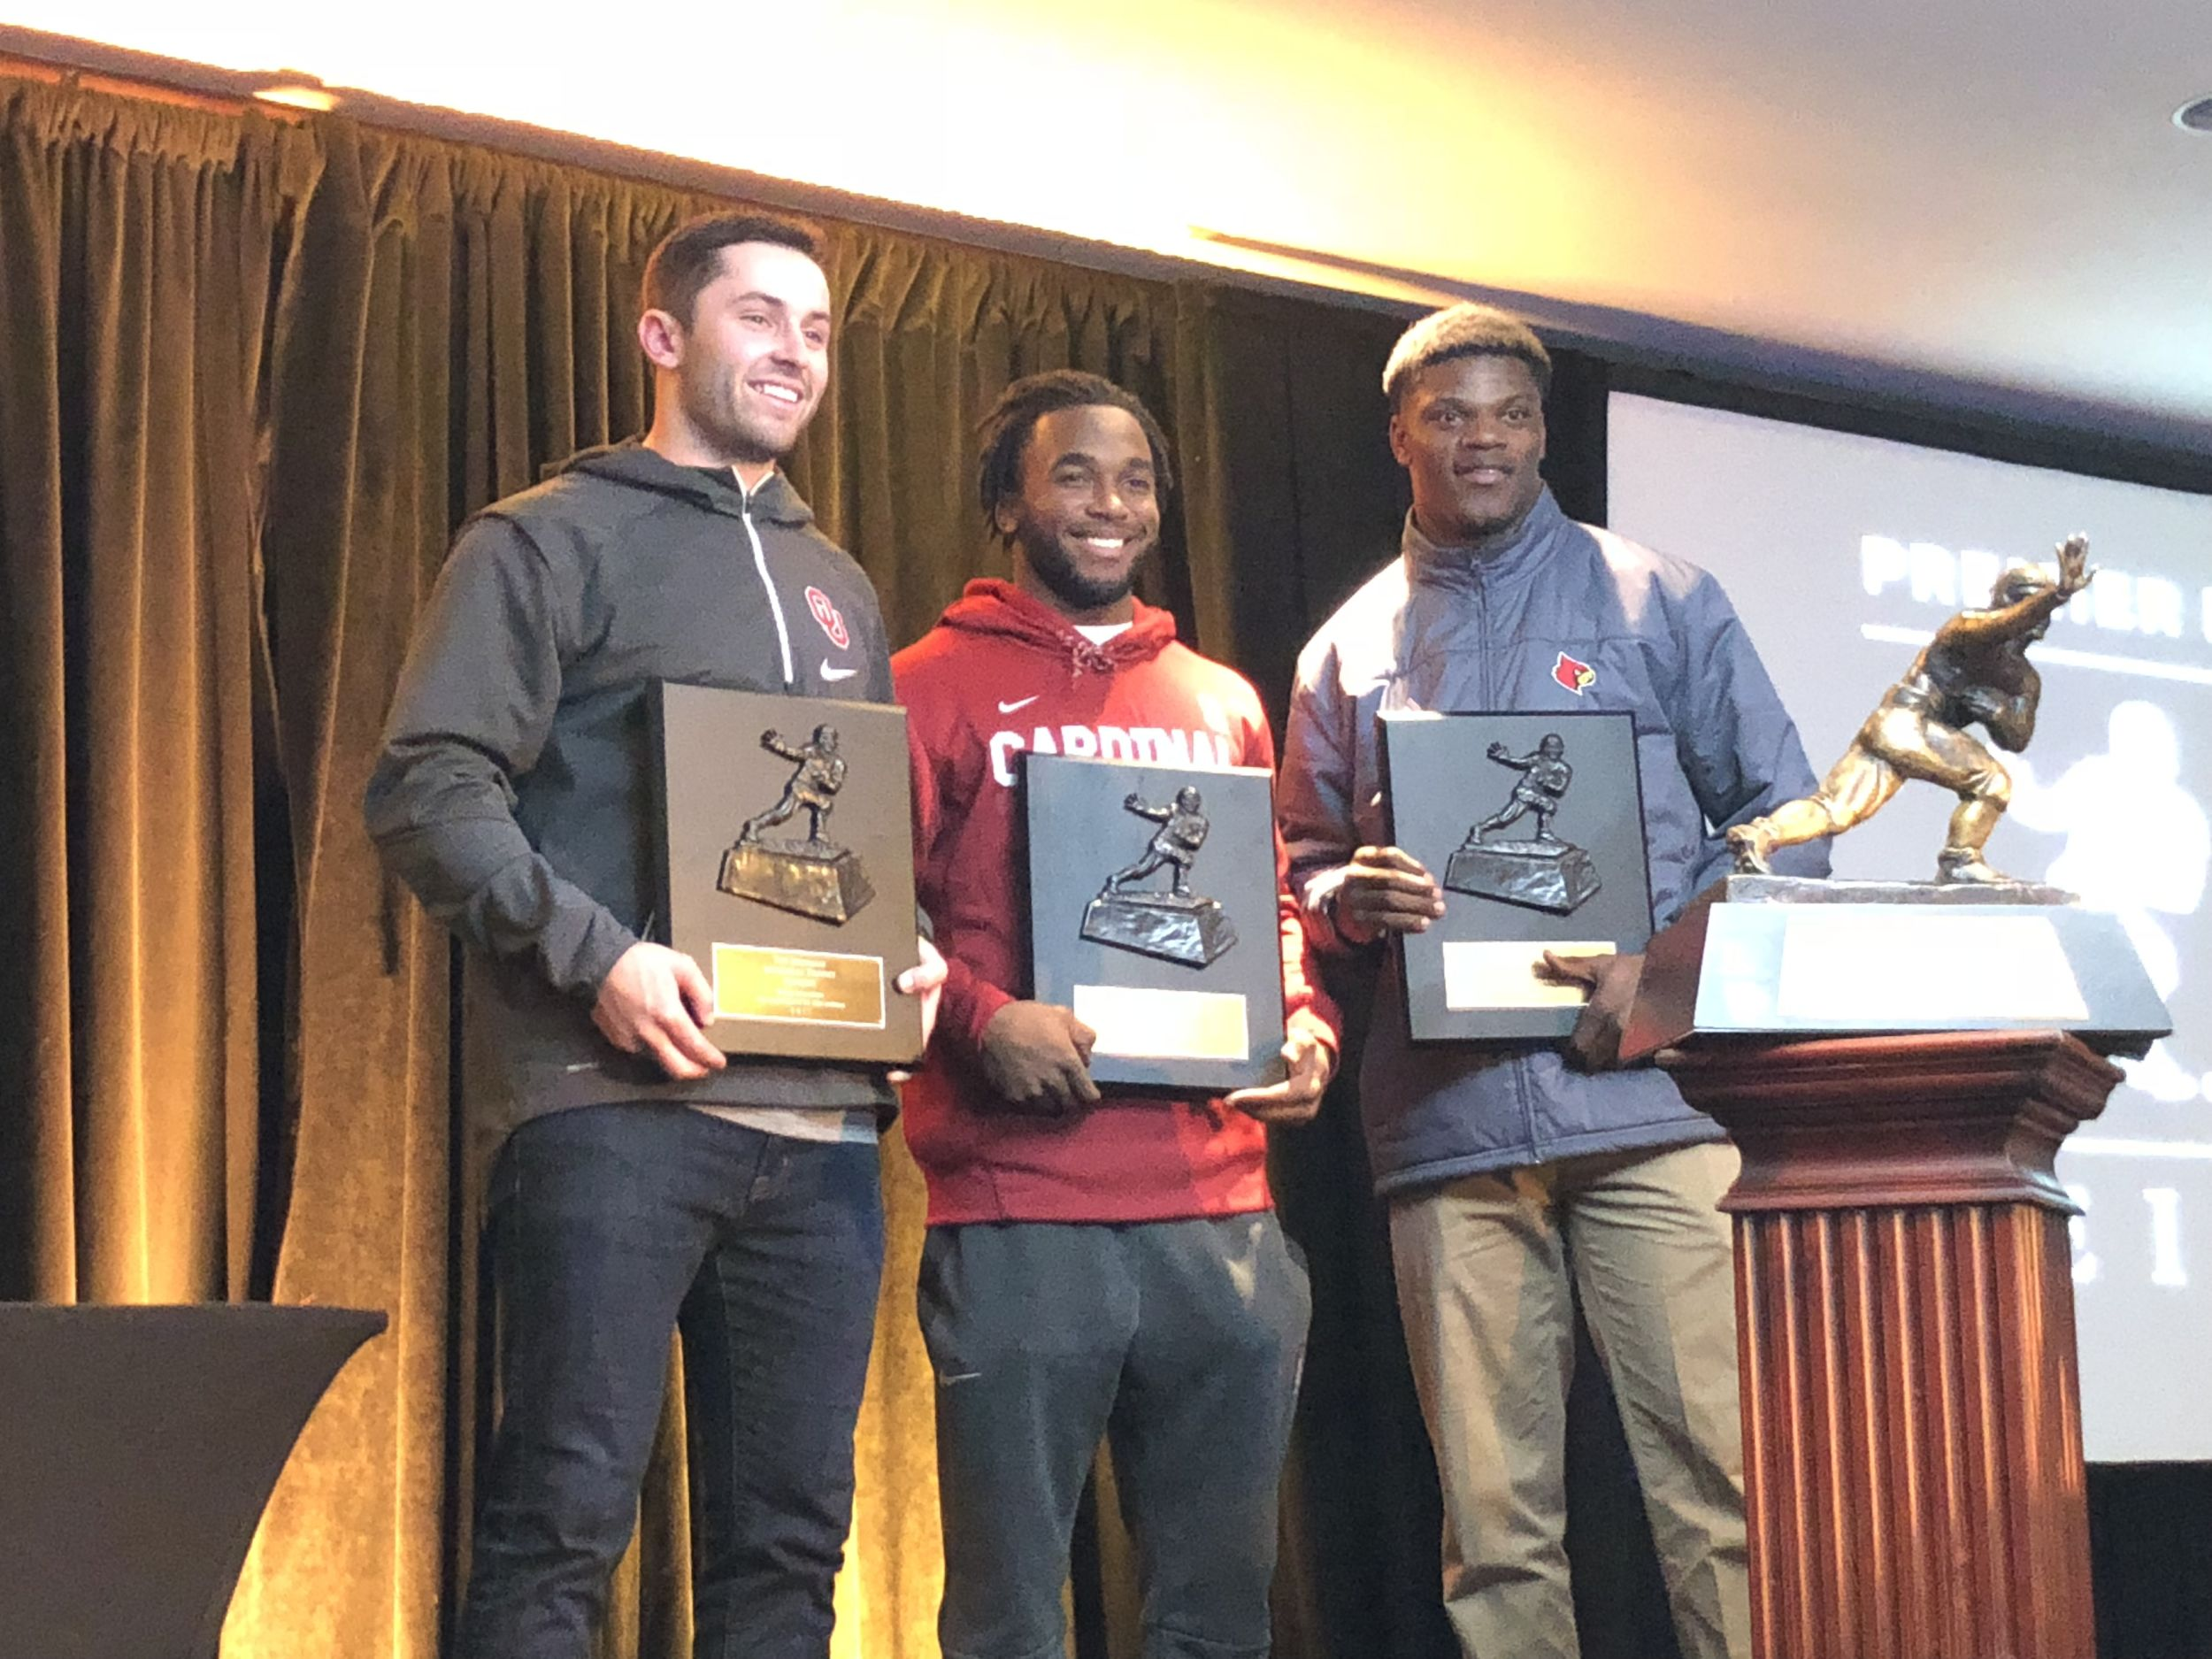 The Heisman finalists with their finalist plaques